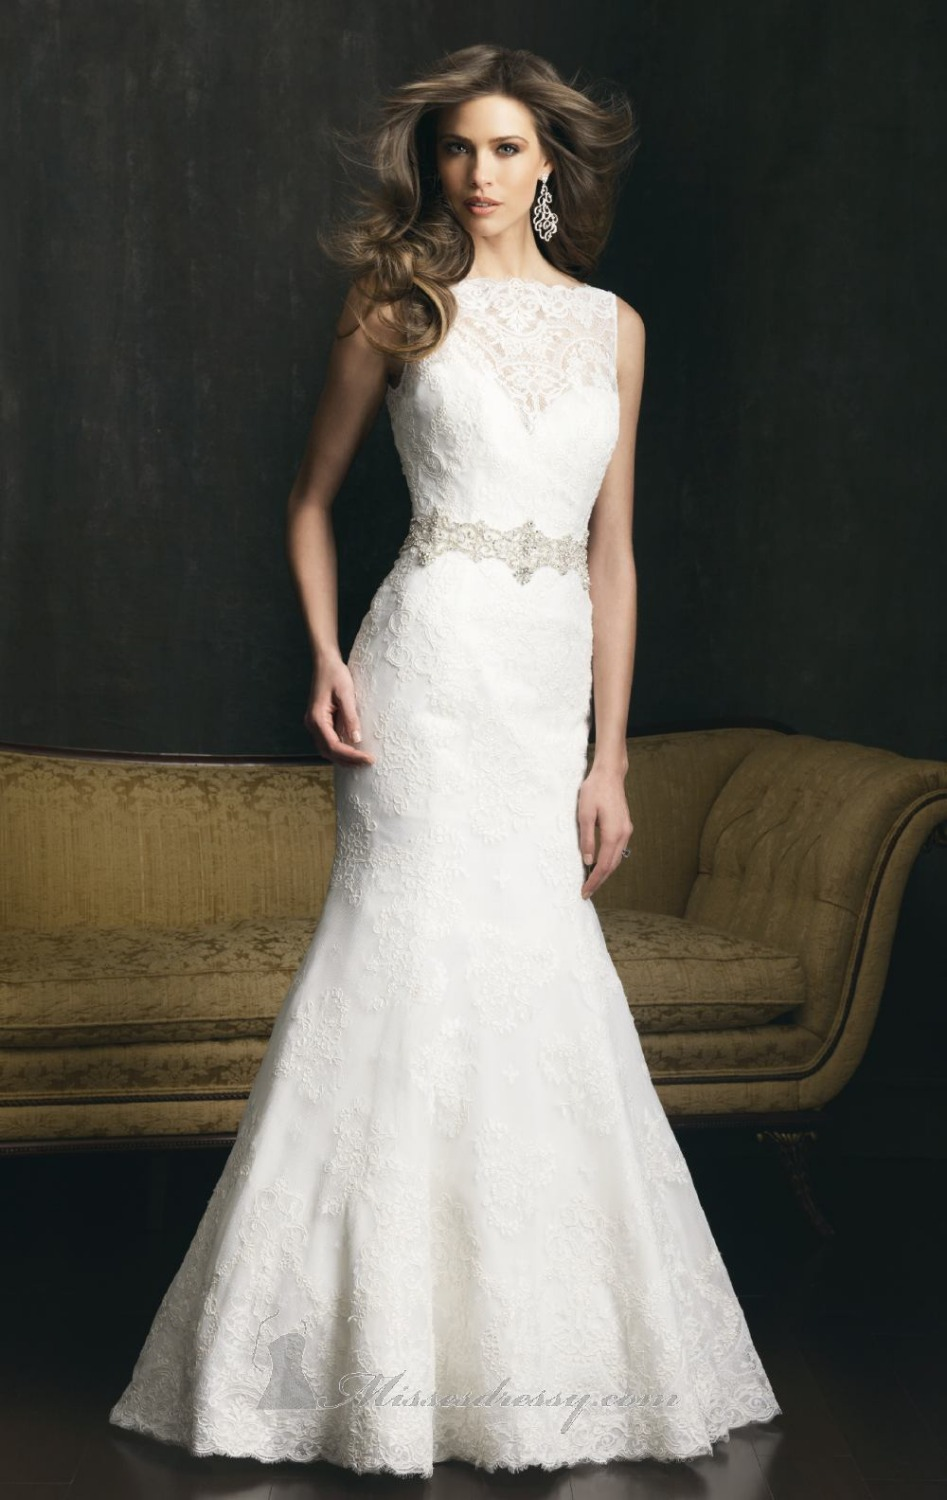 Hot new style white ivory bridal gown formal wedding gown for New wedding dress styles